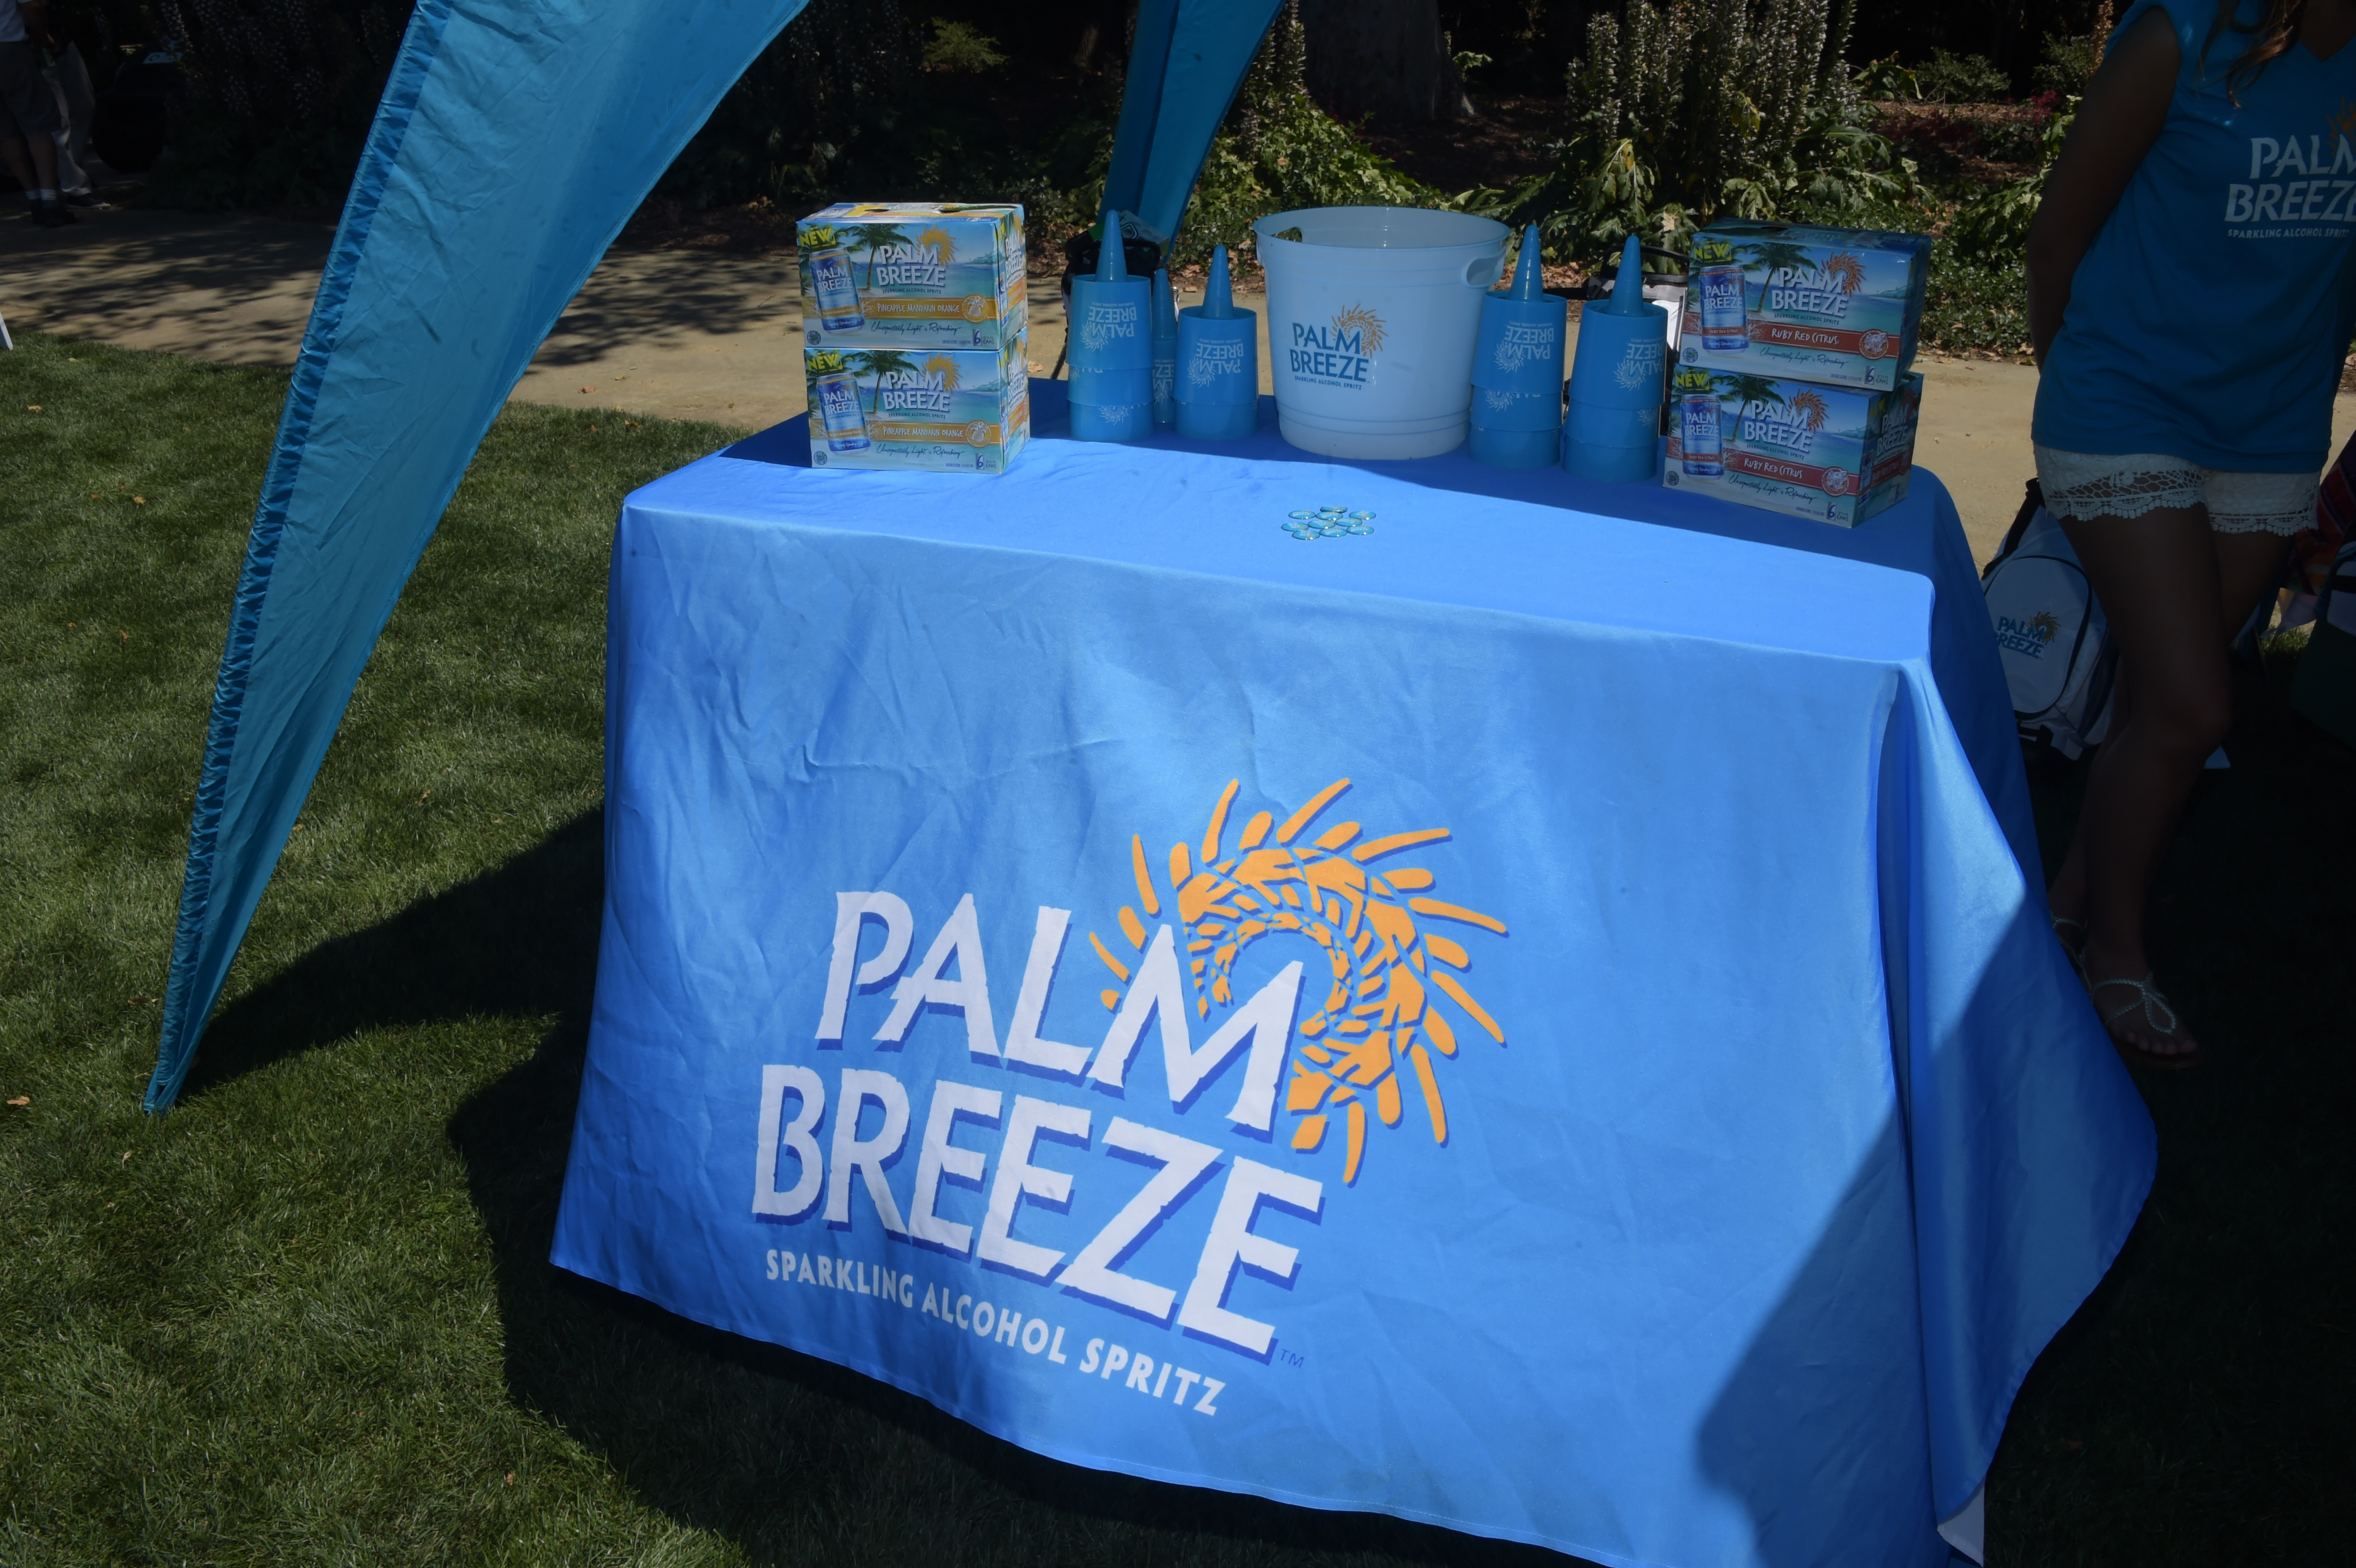 Palm Breeze sponsors The Screen Actors Guild Foundation's 6th Annual Los Angeles Golf Classic on June 8, 2015 in Burbank, California. (Photo by Jason Kempin/Getty Images for The Screen Actors Guild Foundation)